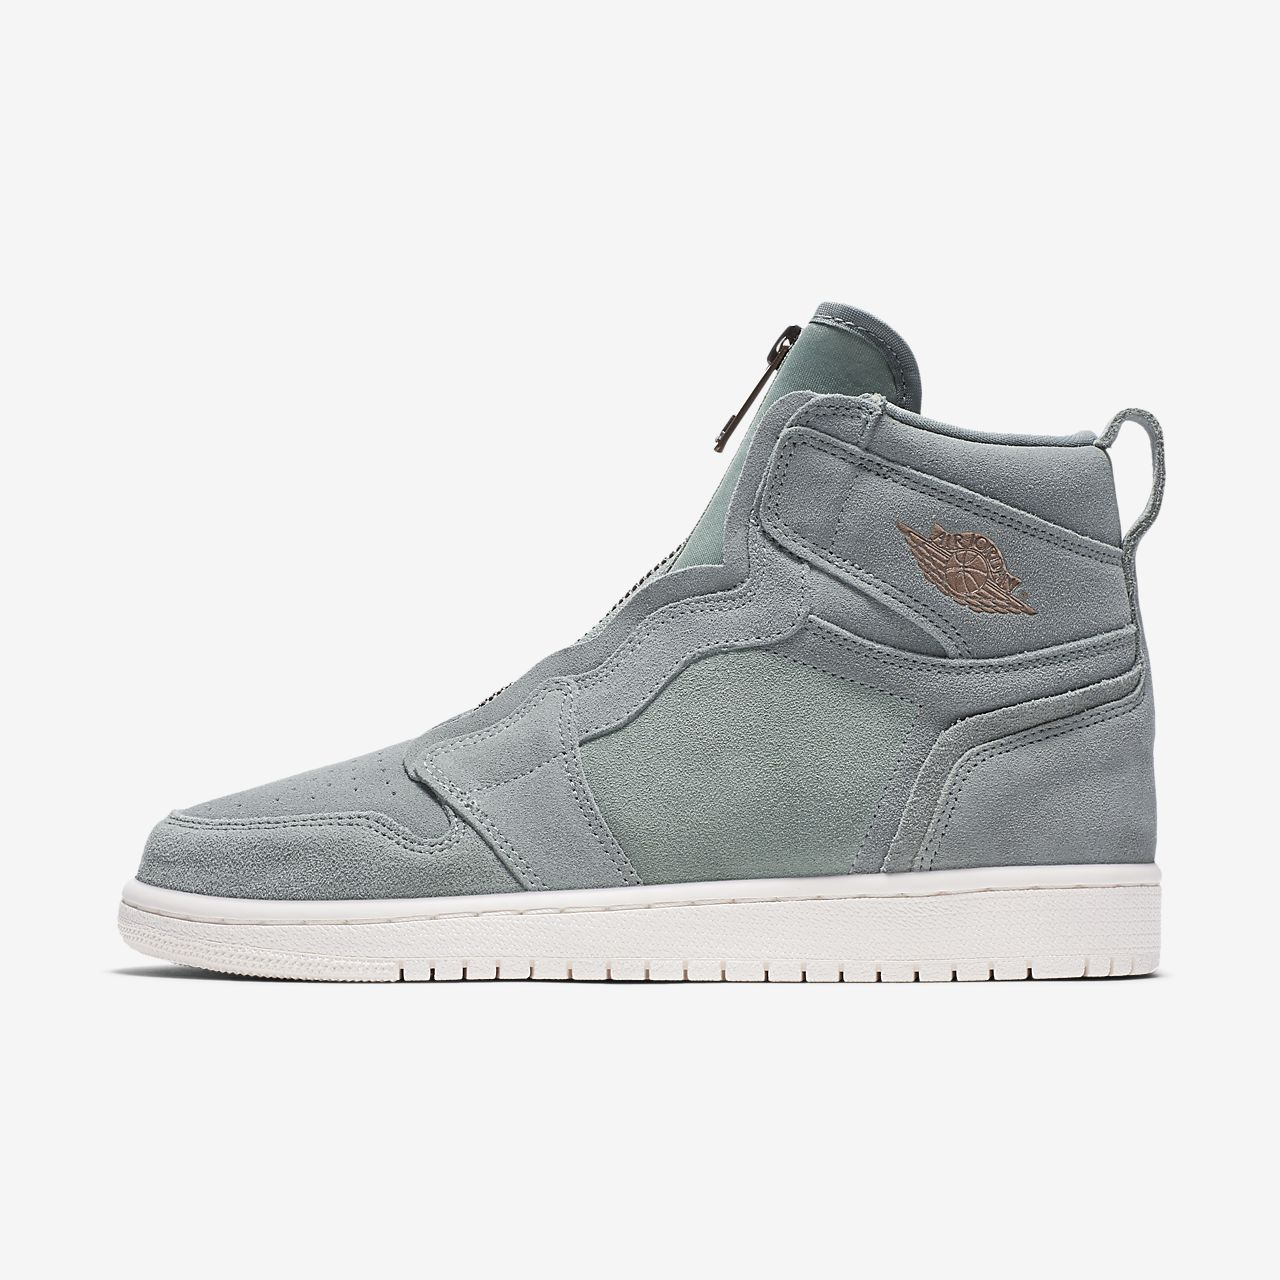 half off 440e9 e998a Women s Shoe. Air Jordan 1 High Zip